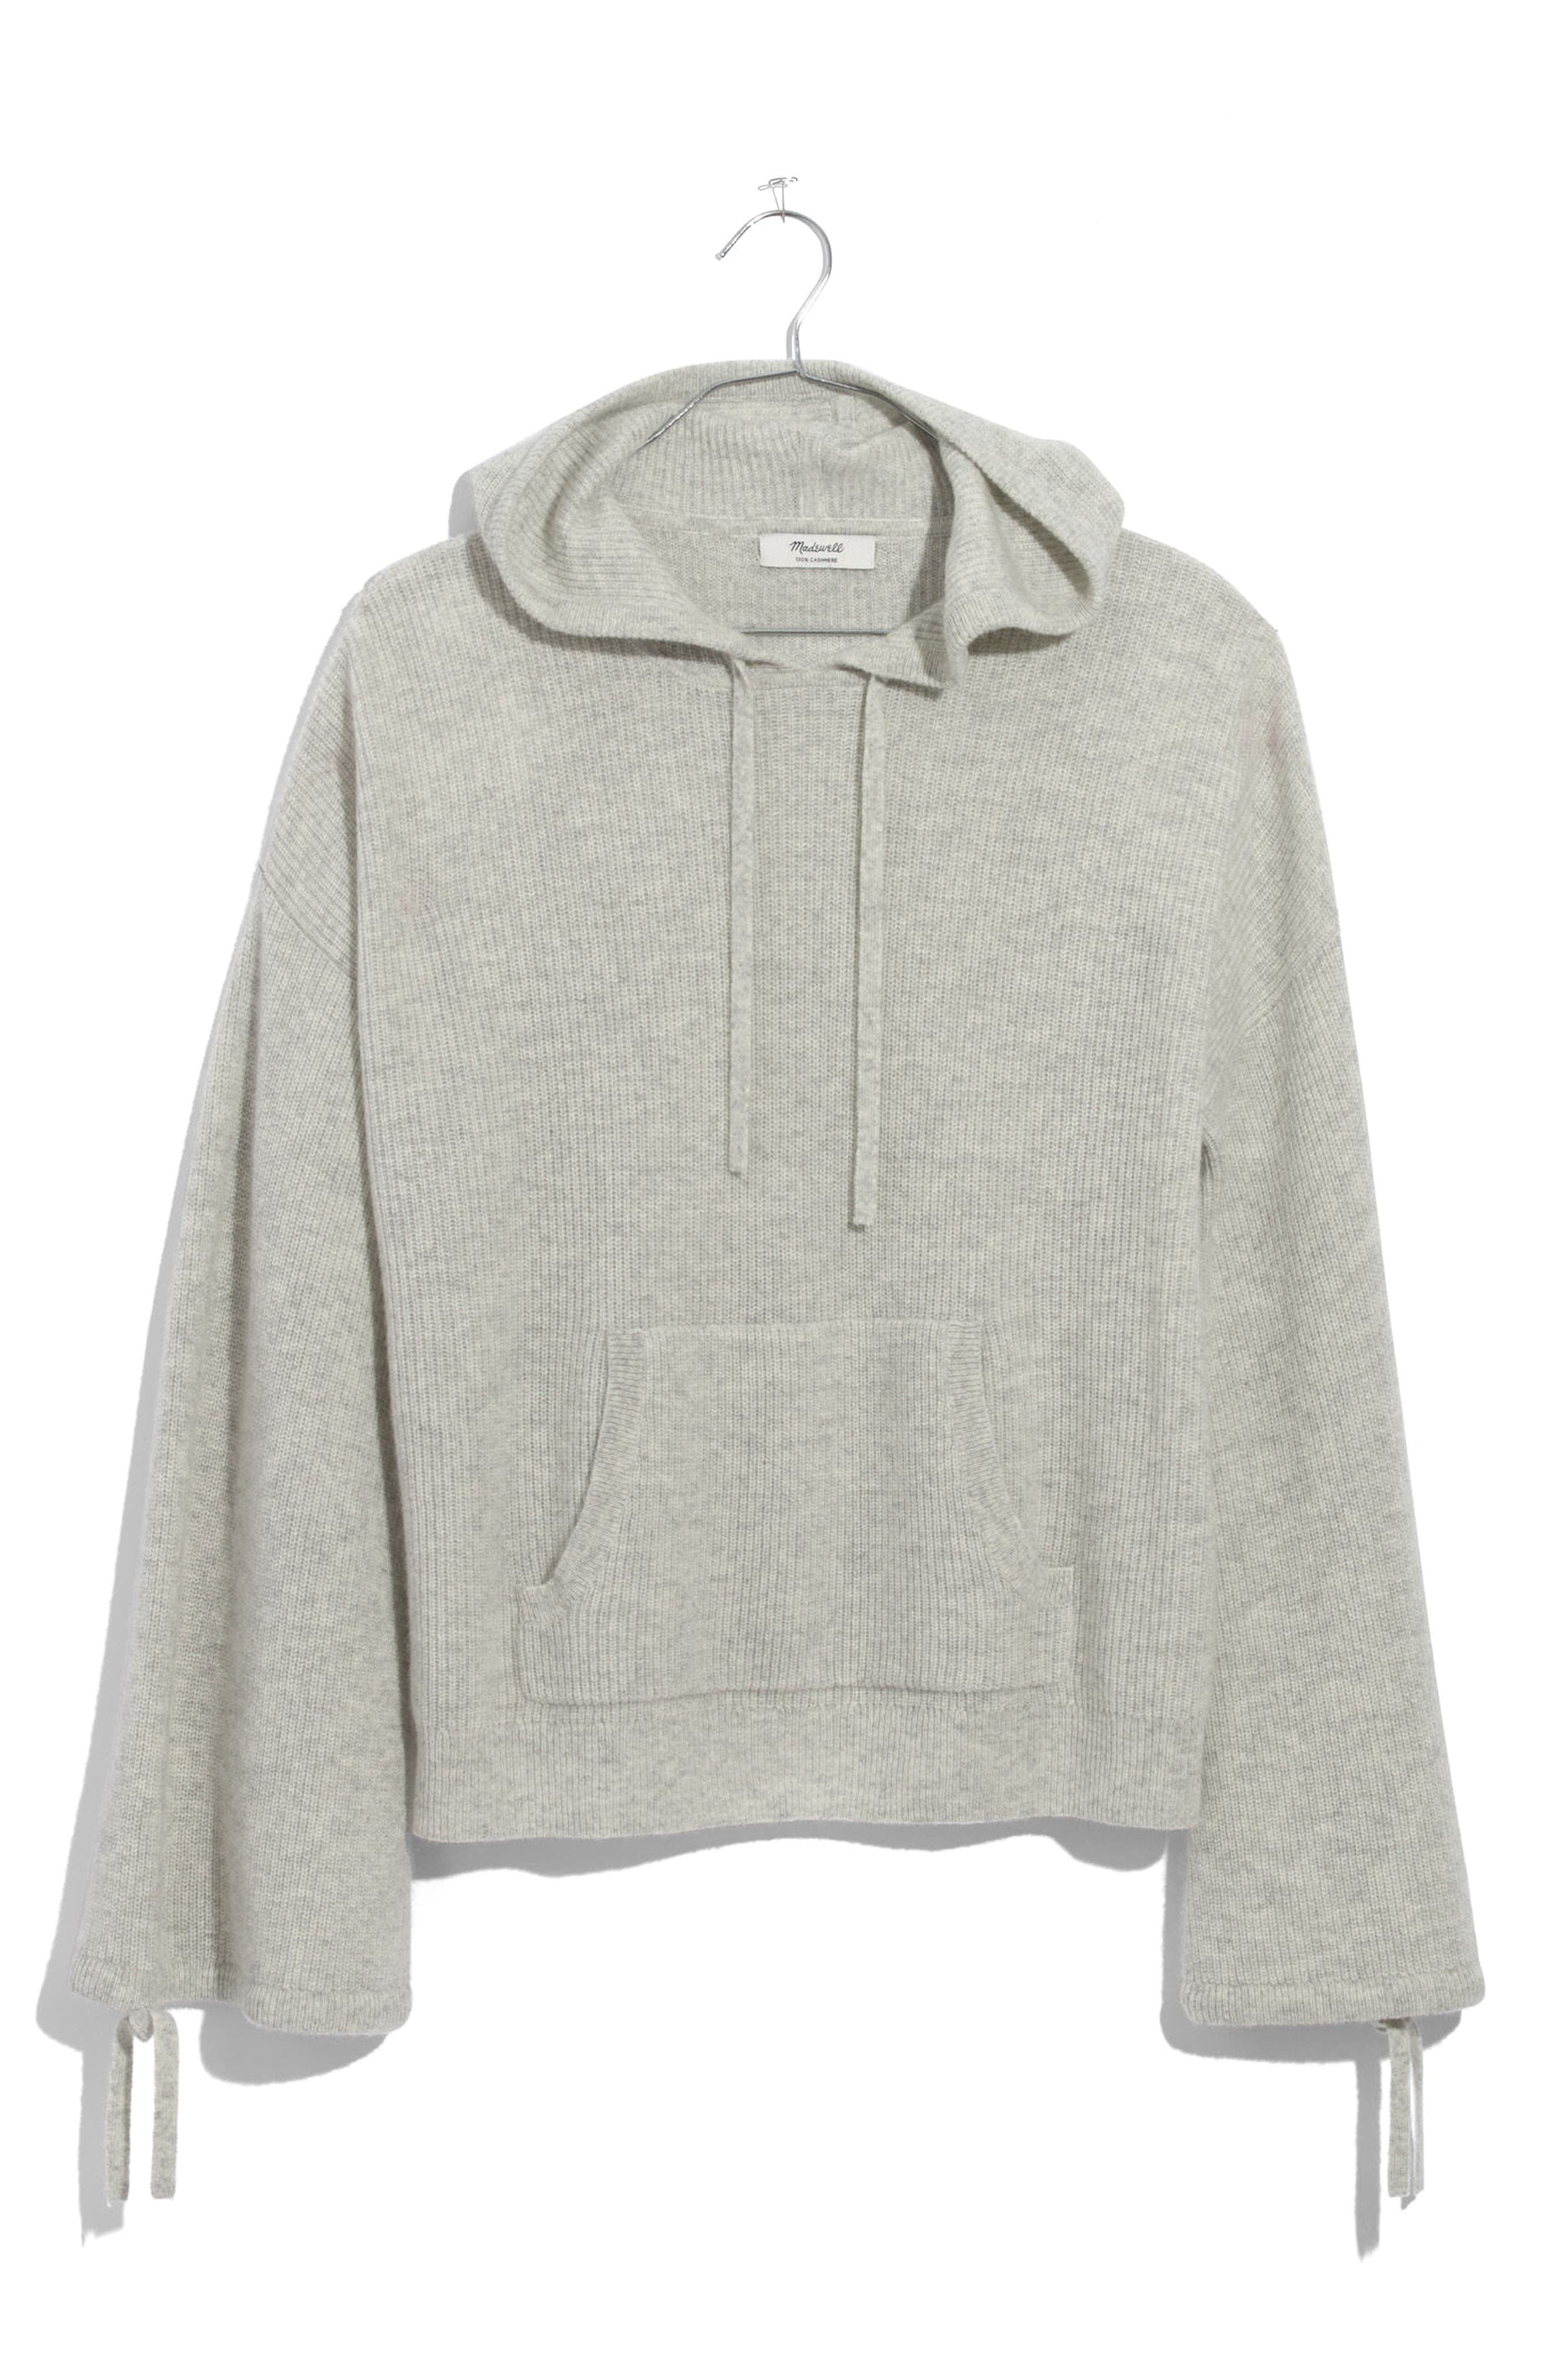 Madewell Cashmere Hooded Sweater